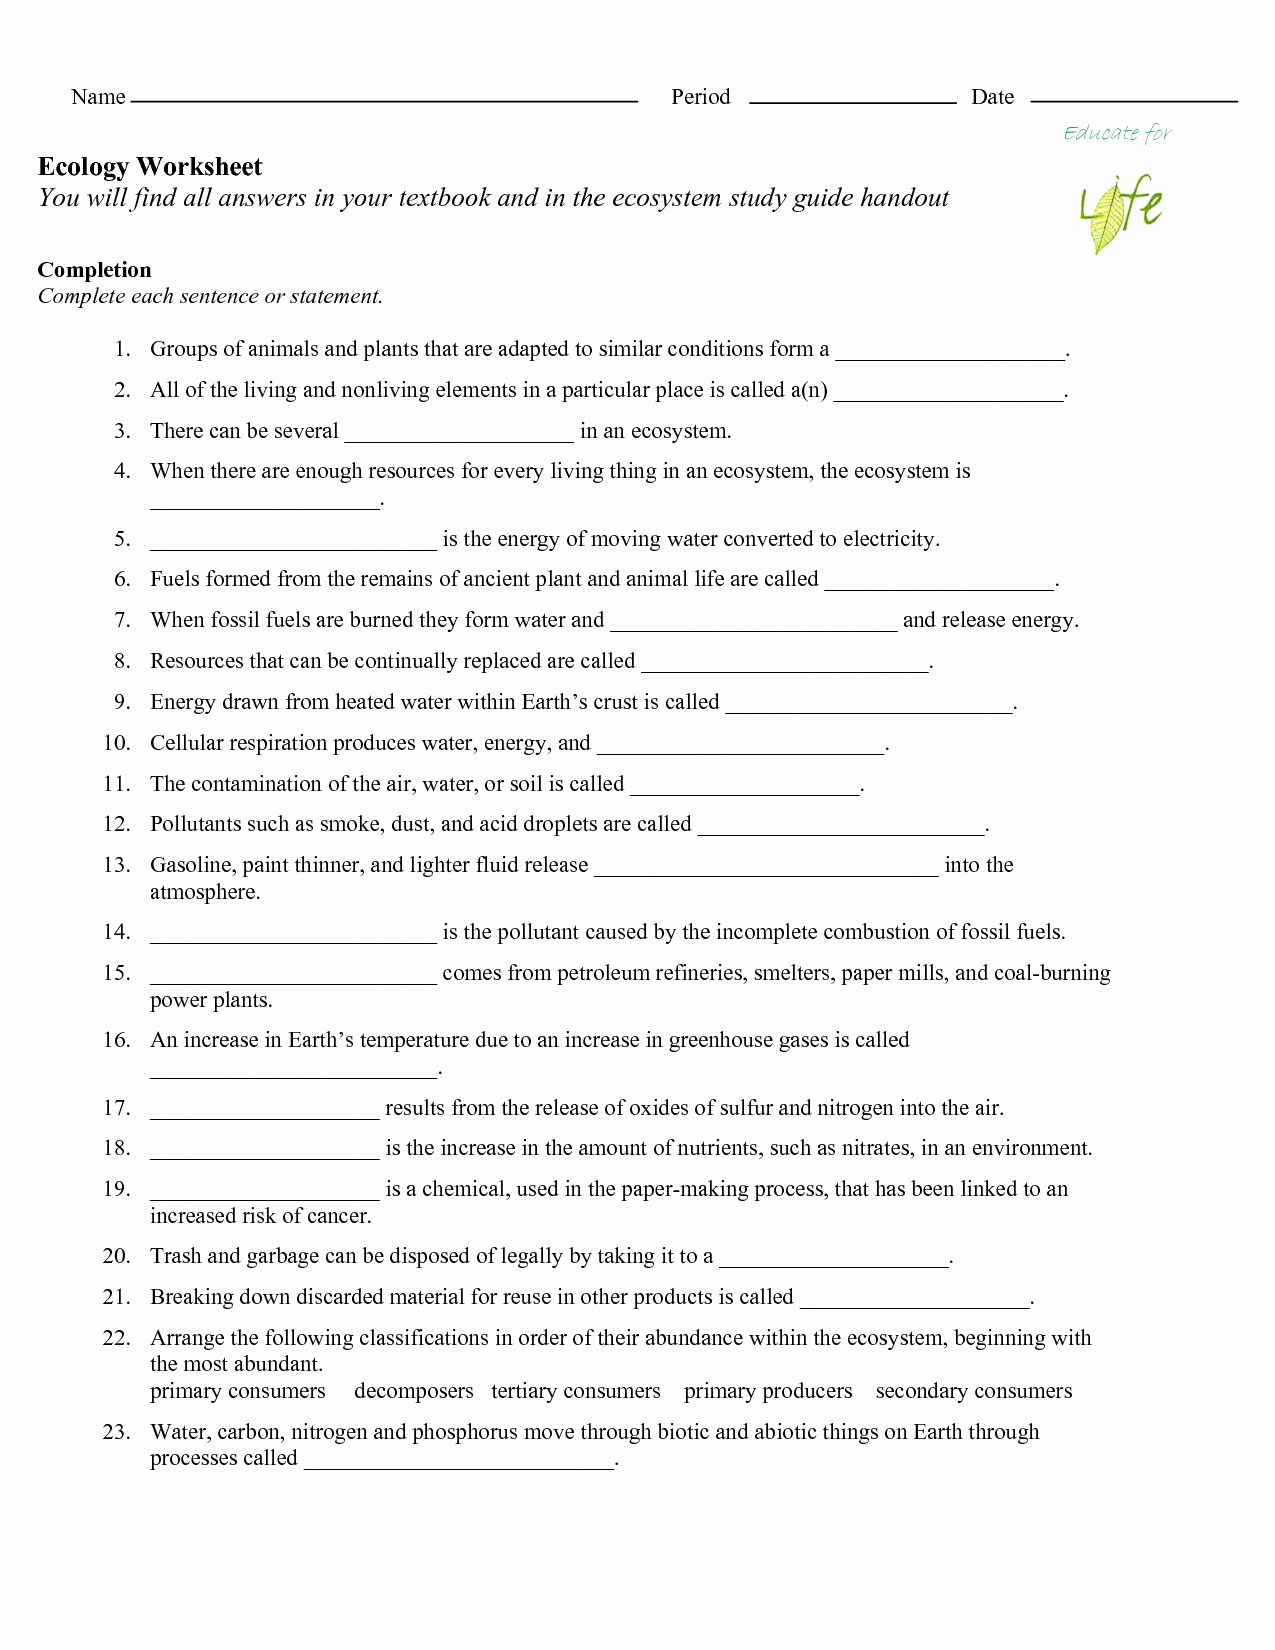 Biogeochemical Cycles Worksheet Answers Lovely 17 Best Of Nitrogen Cycle Worksheet Middle School